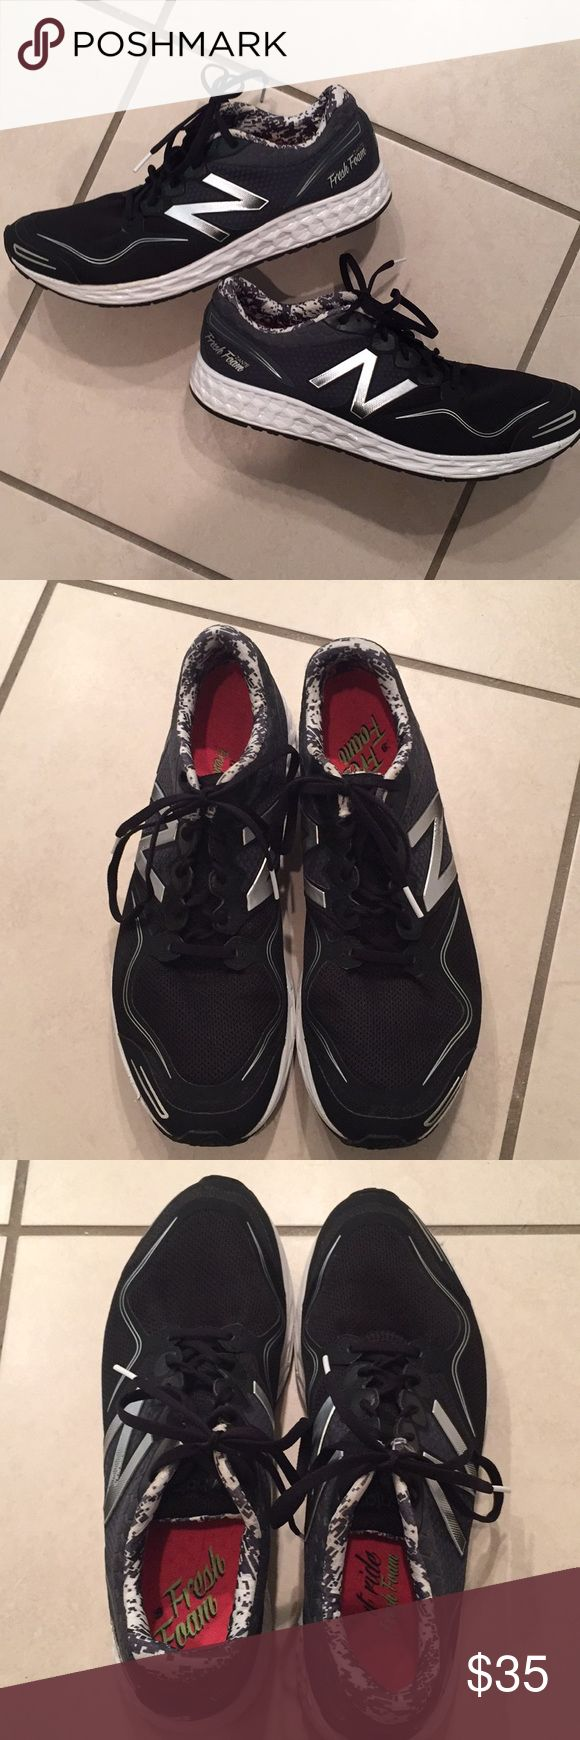 Men's New Balance fresh foam sneakers Light weight black, gray and silver sneakers, worn but still a lot of life left!! See pics- minimal wear! New Balance Shoes Sneakers